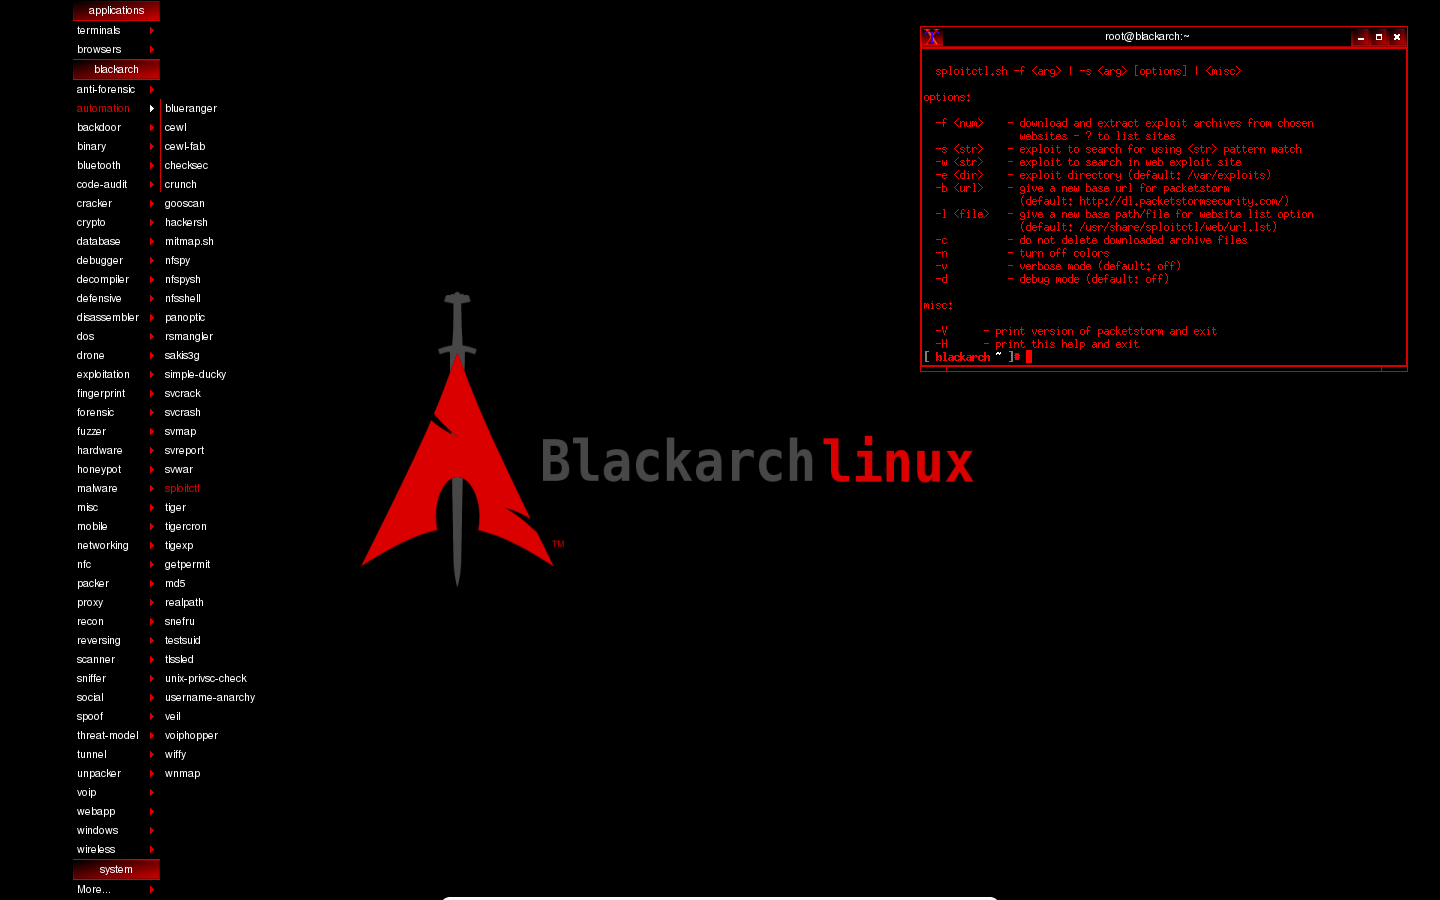 BlackArch .. a Linux distribution of security and penetration with more than 1,000 tool